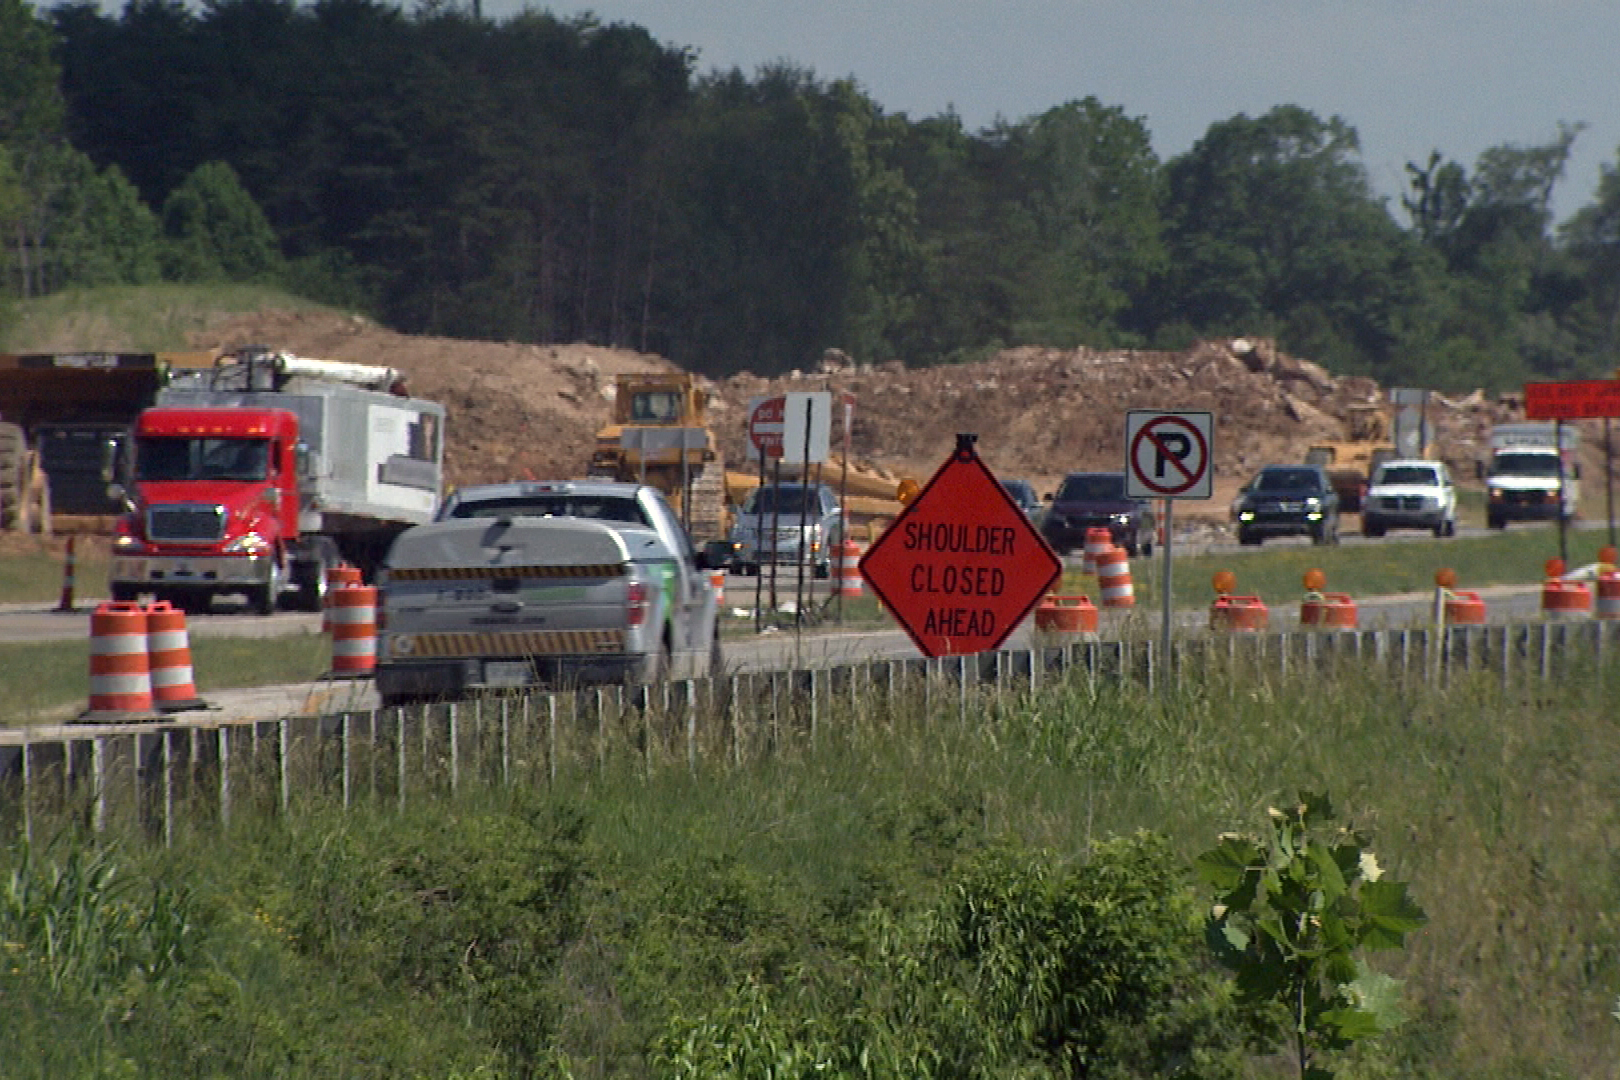 site://BL-RTV-WEBS.blank/news/officials-flooding-is-a-top-concern-in-designs-for-i-69-section-6